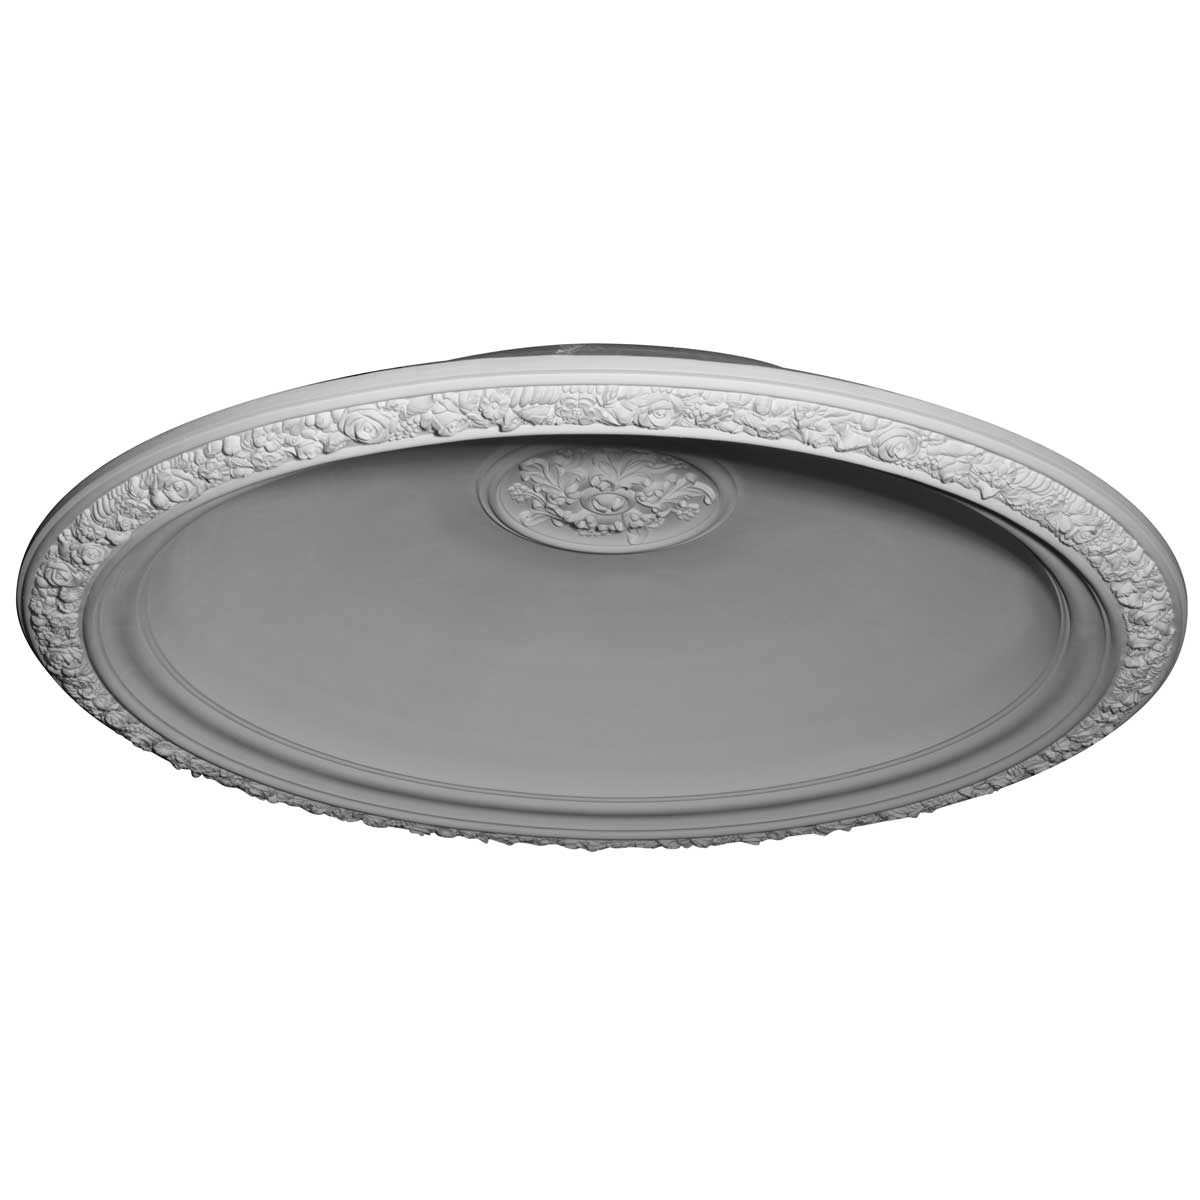 """DOME59FL 59""""OD x 47""""ID x 11""""D Floral Recessed Mount Ceiling Dome (53"""" Diameter x 12""""D Rough Opening)"""